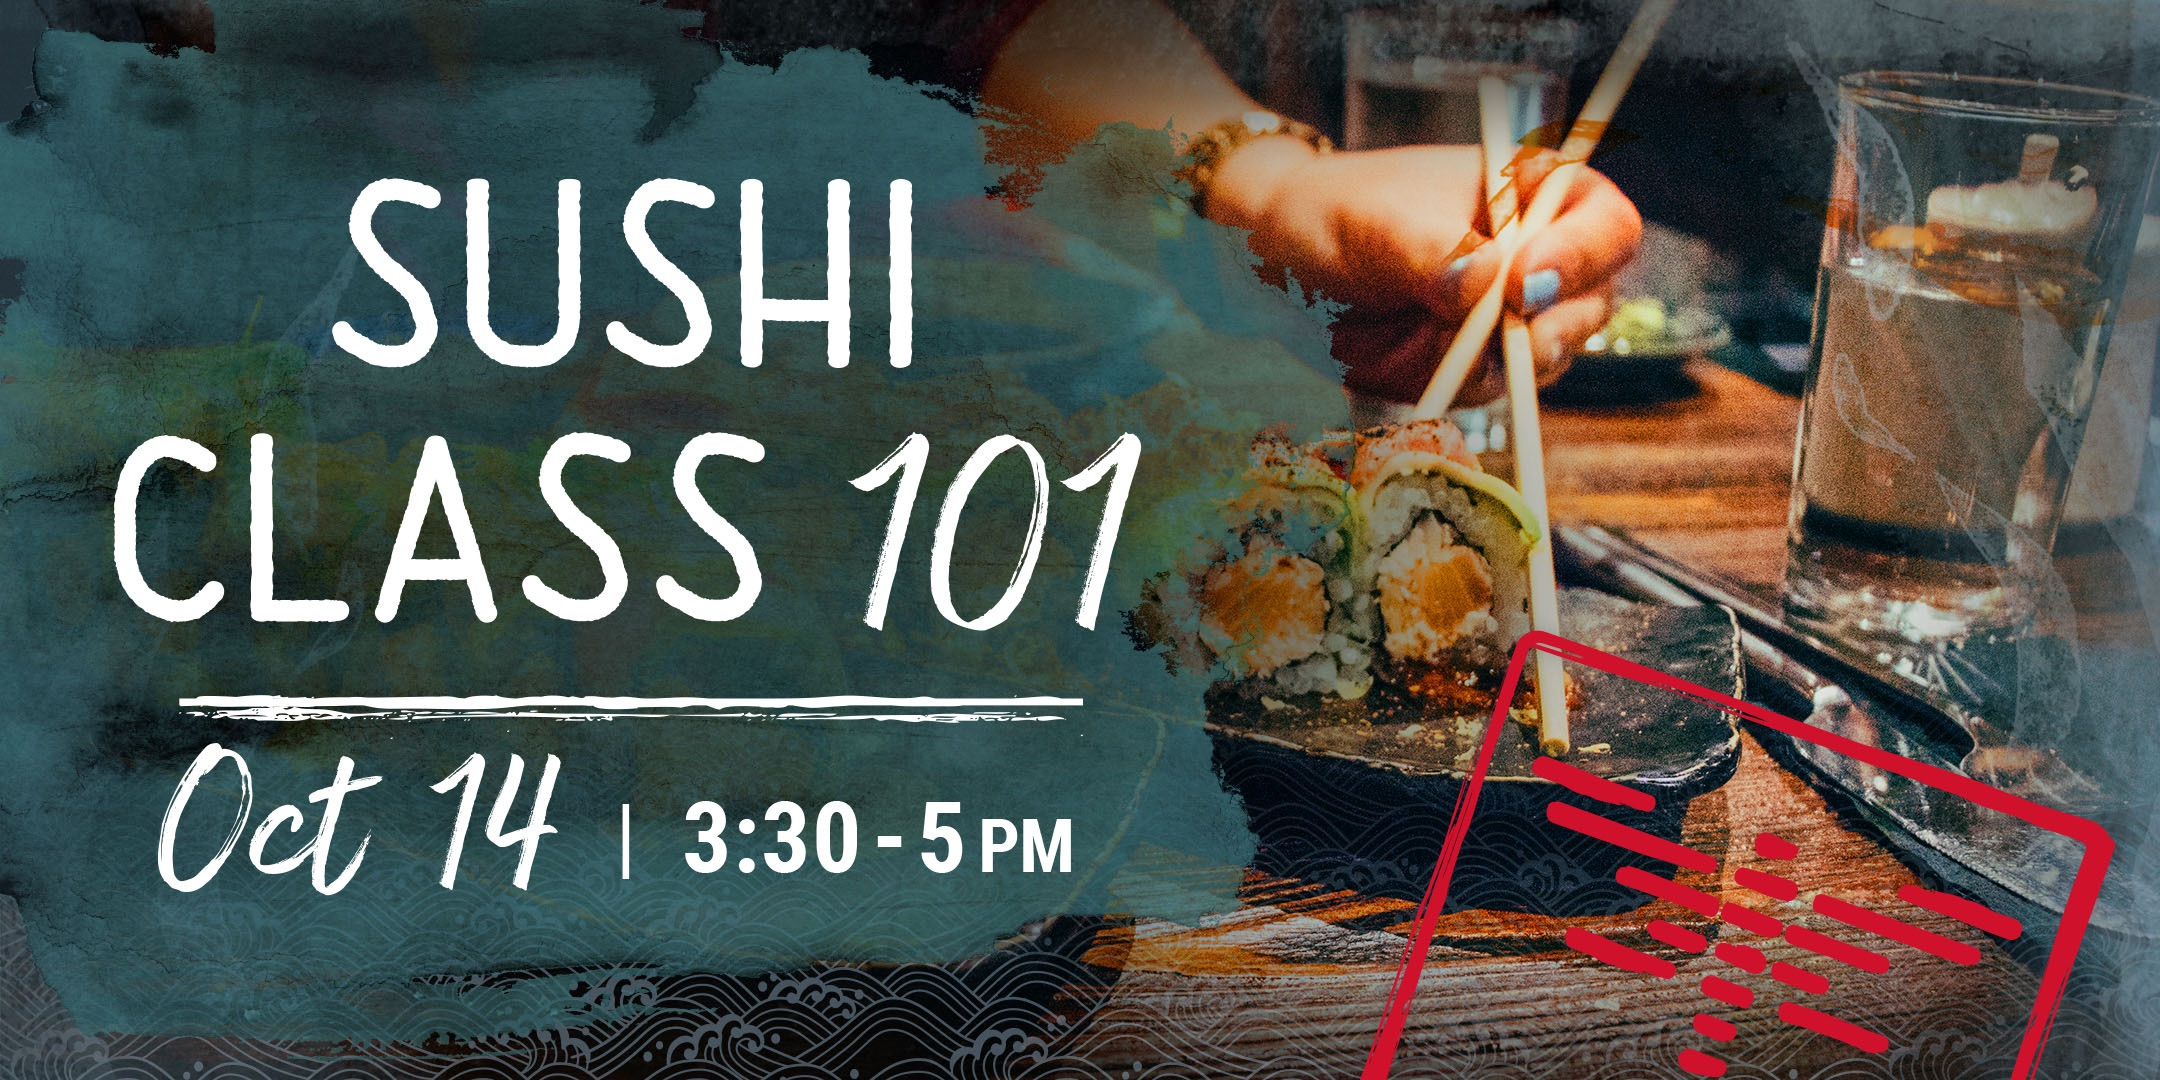 Doral sushi class event header image.